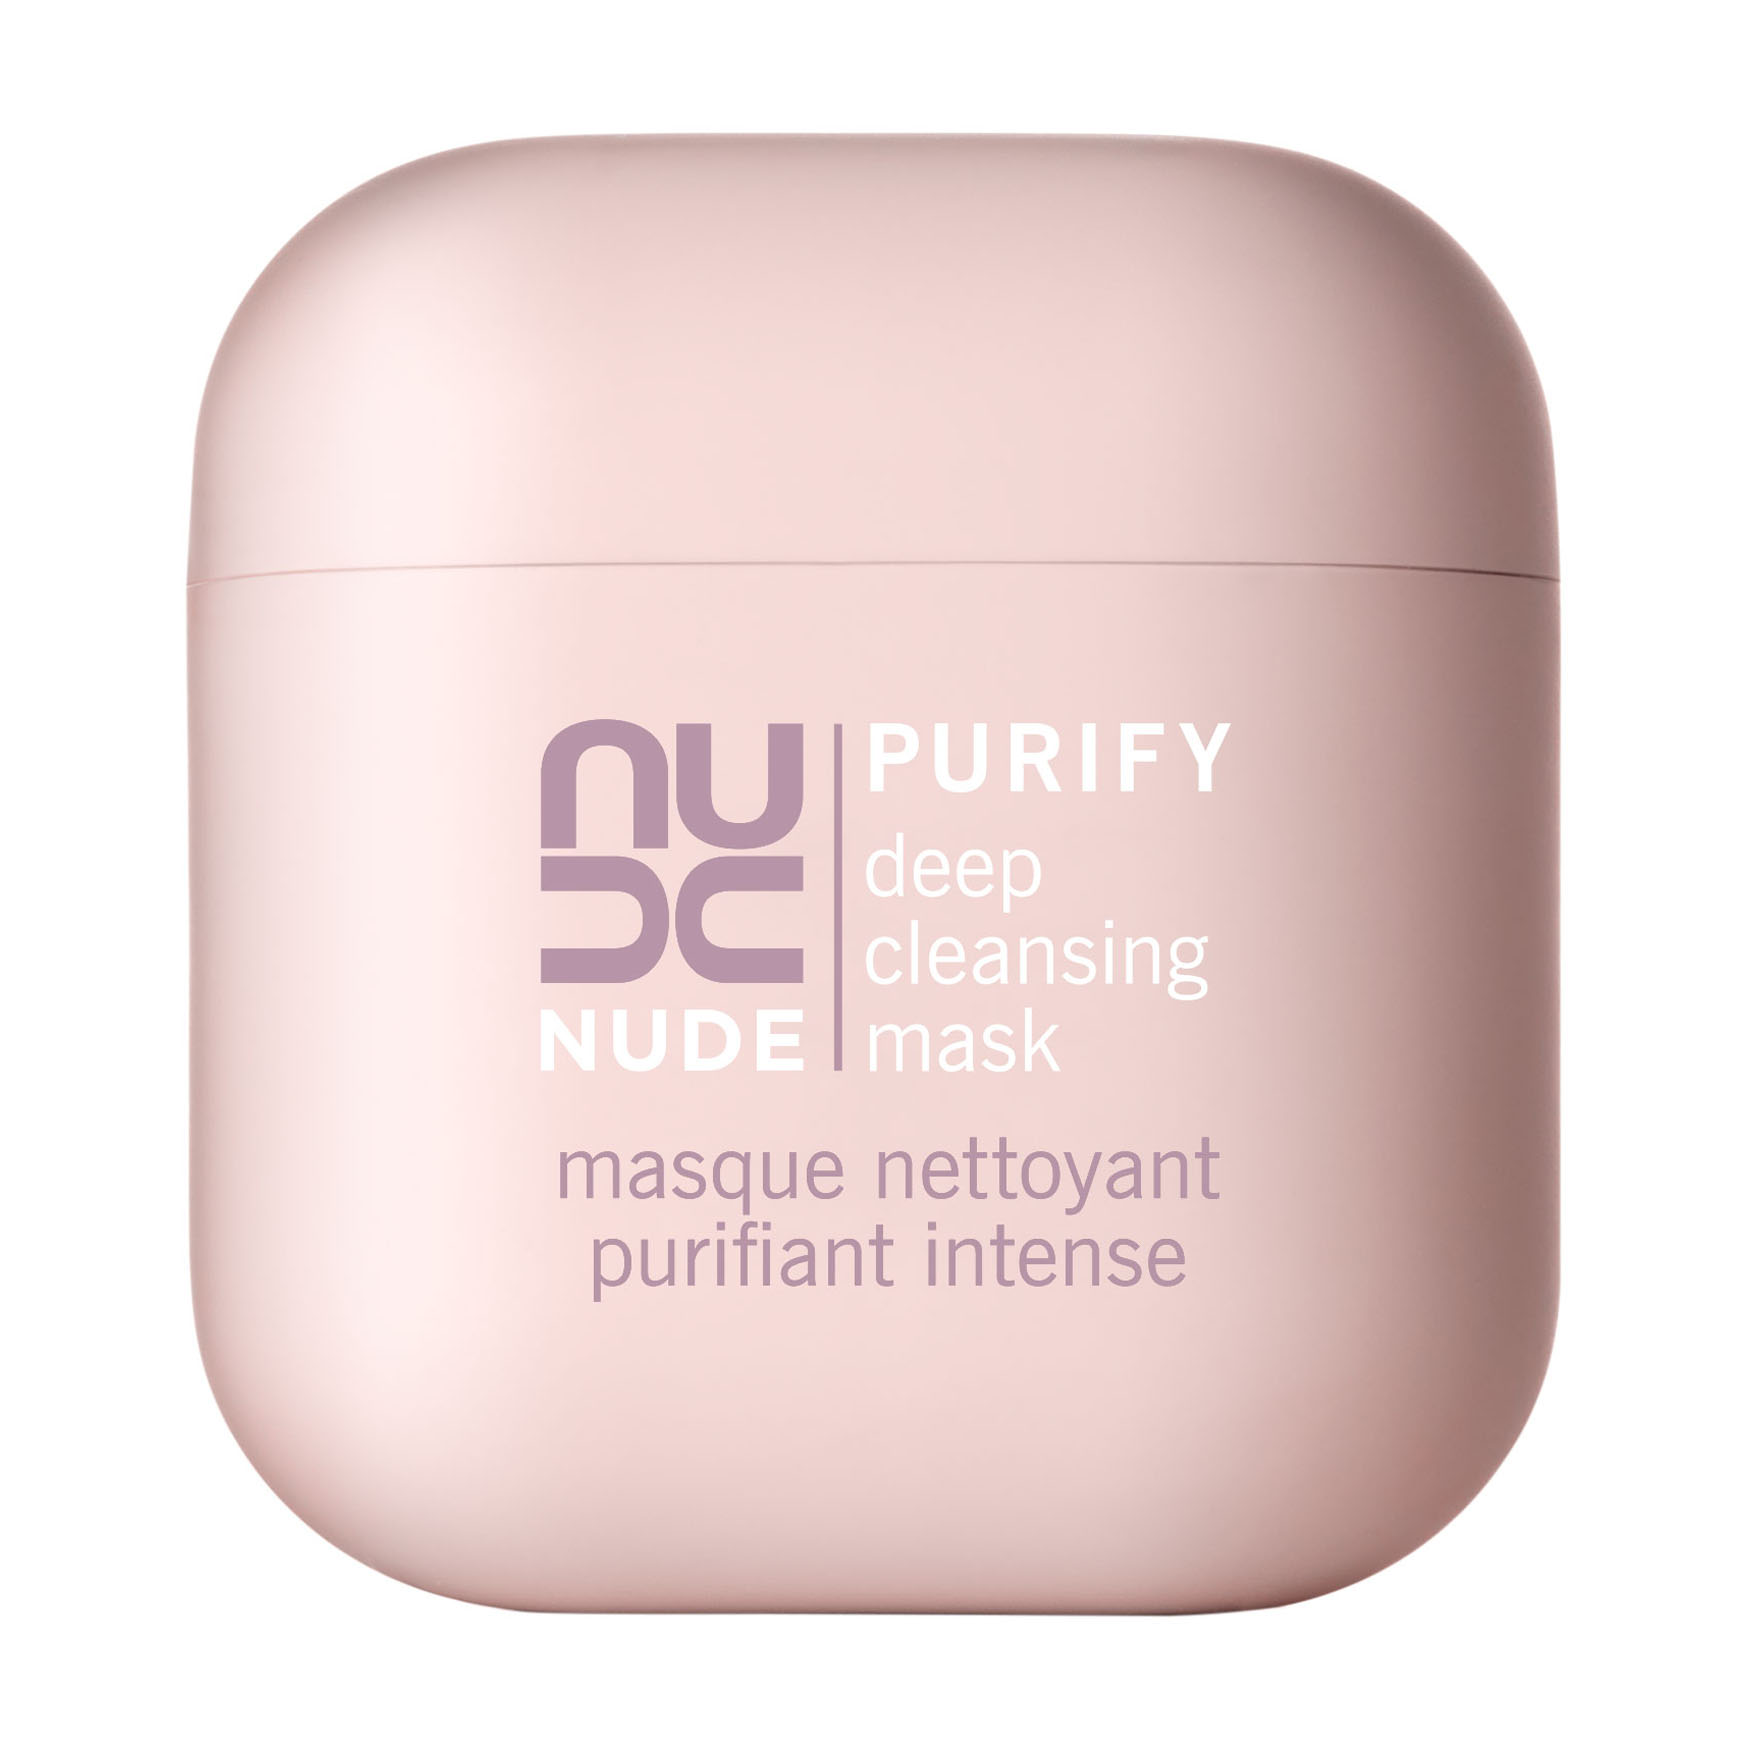 Nude beauty products Nude Photos 22